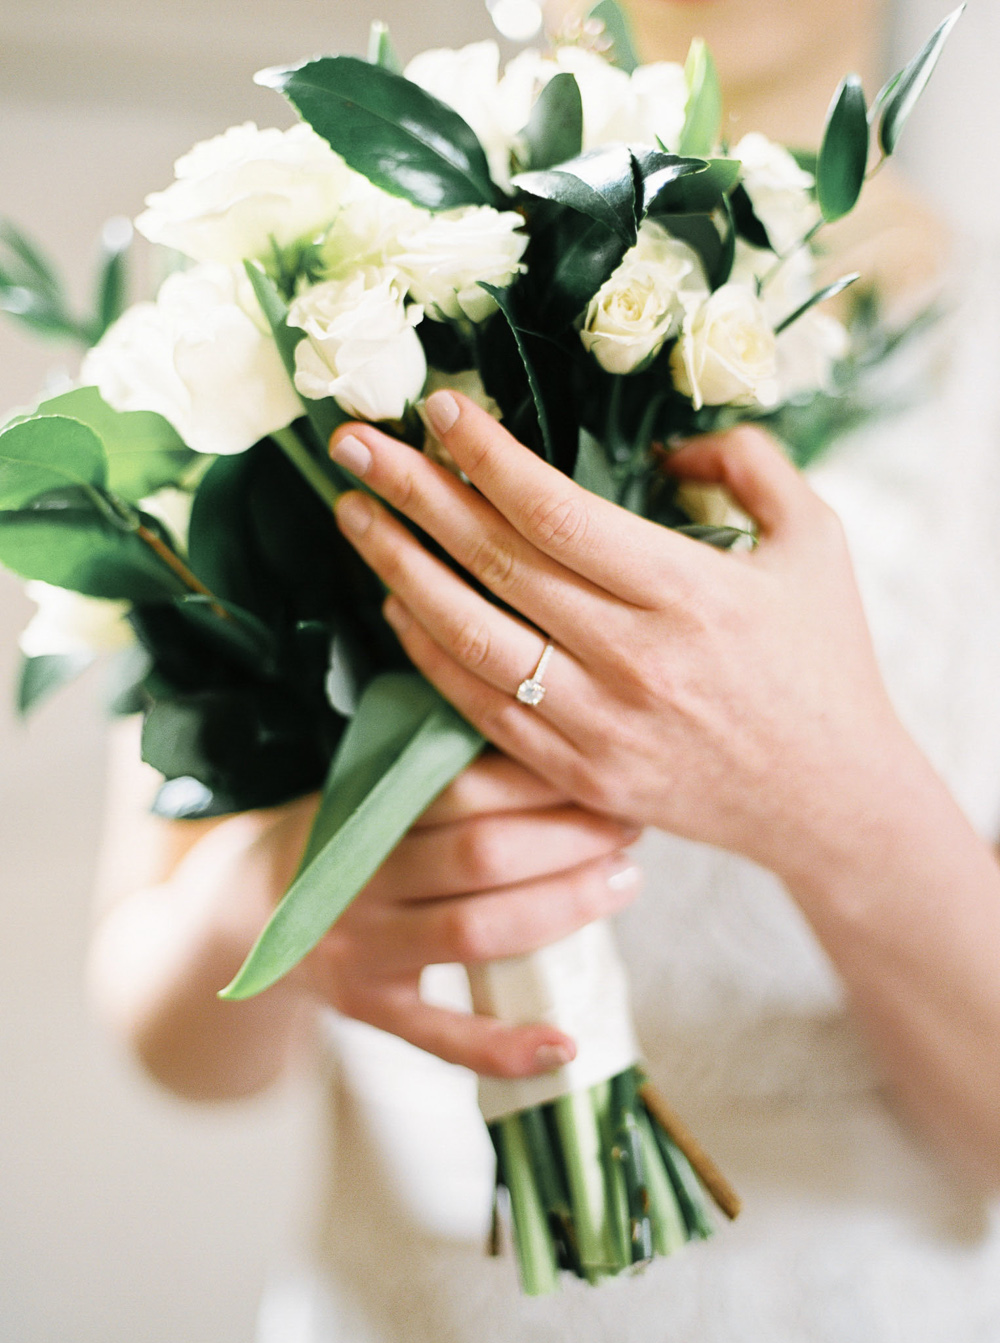 organic green wedding white rose bouquet with simple elegant diamond ring